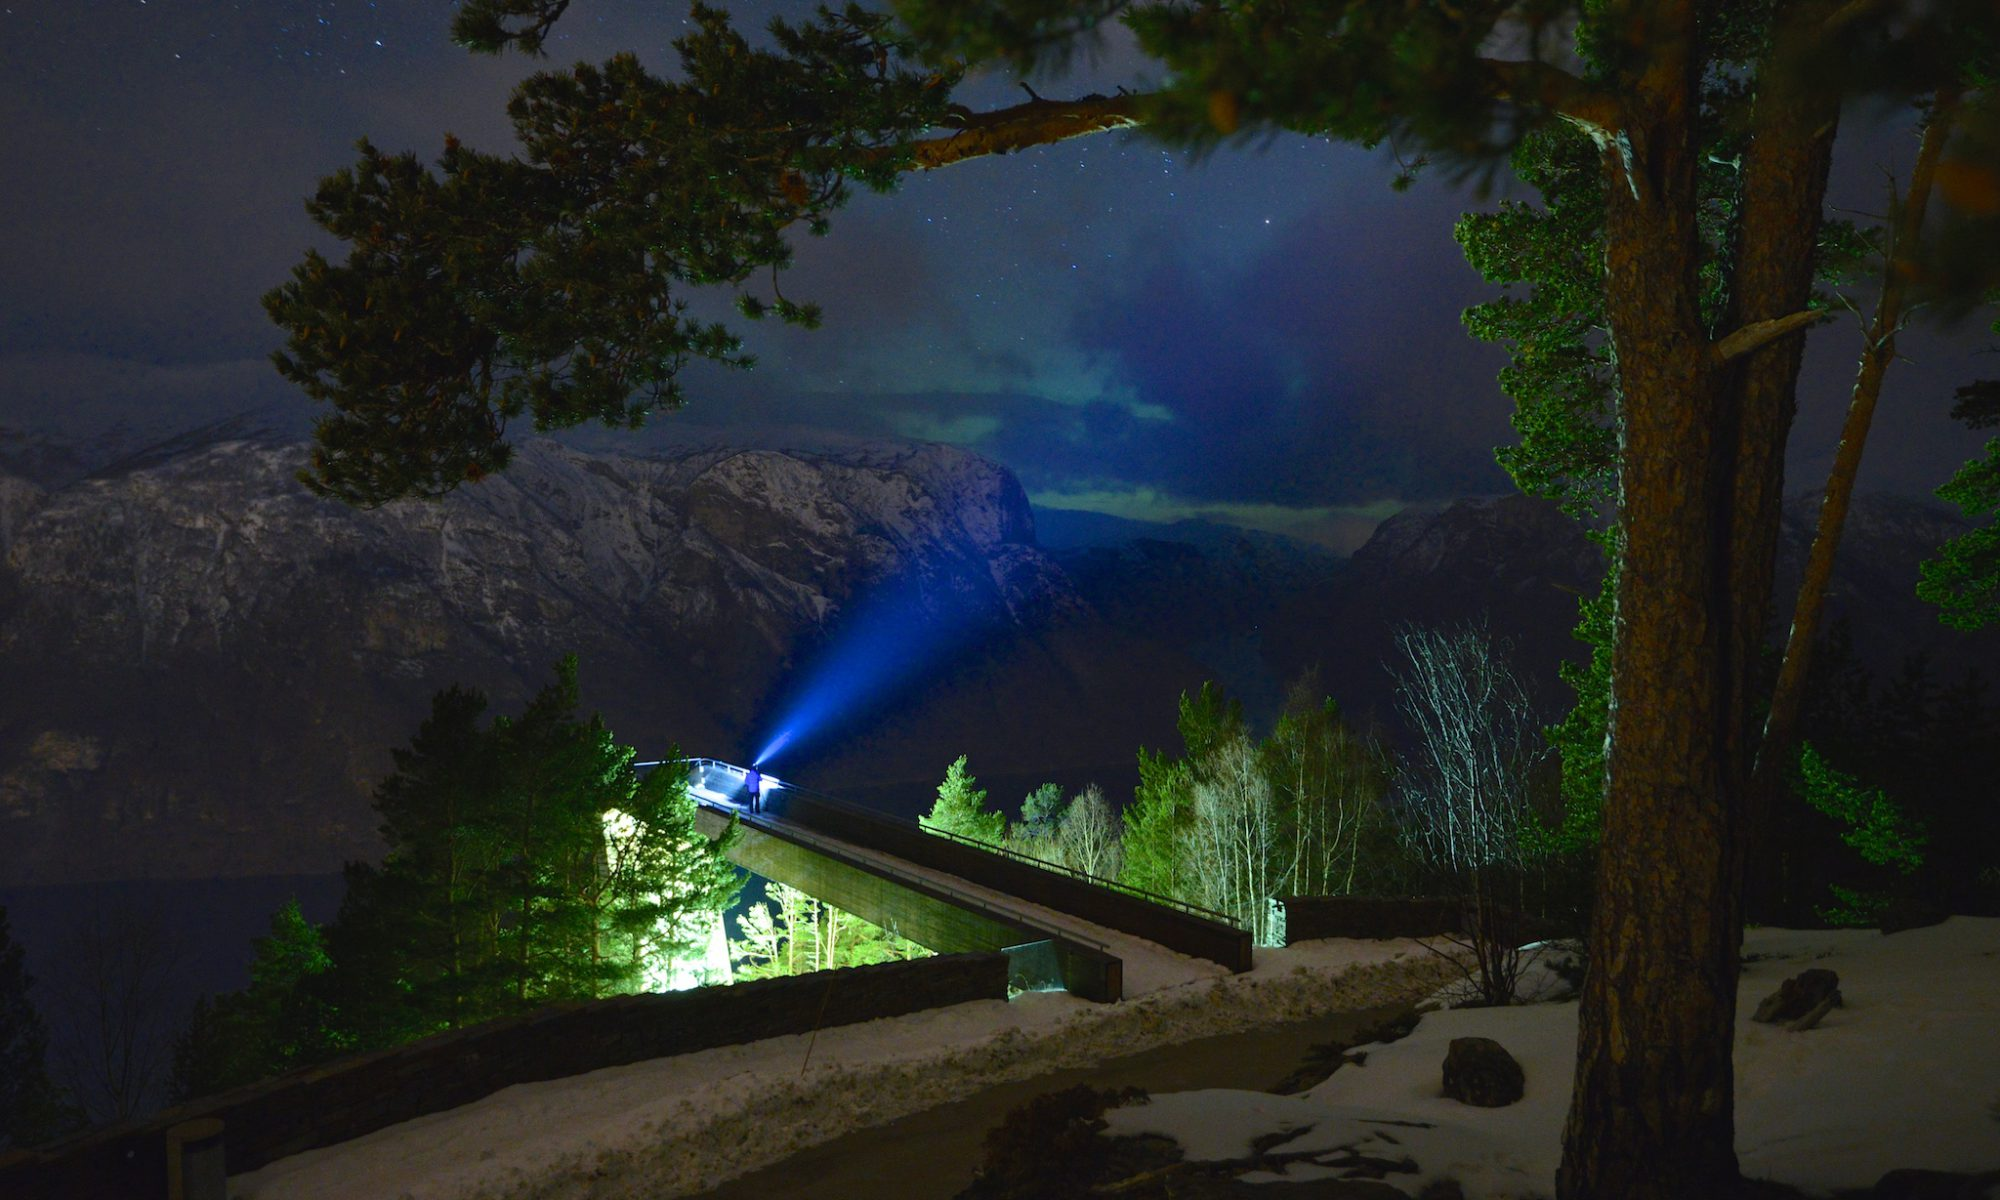 Northern Lights at Stegastein Lookout by the Aurlandsfjord. Sogn og Fjordane, Norway